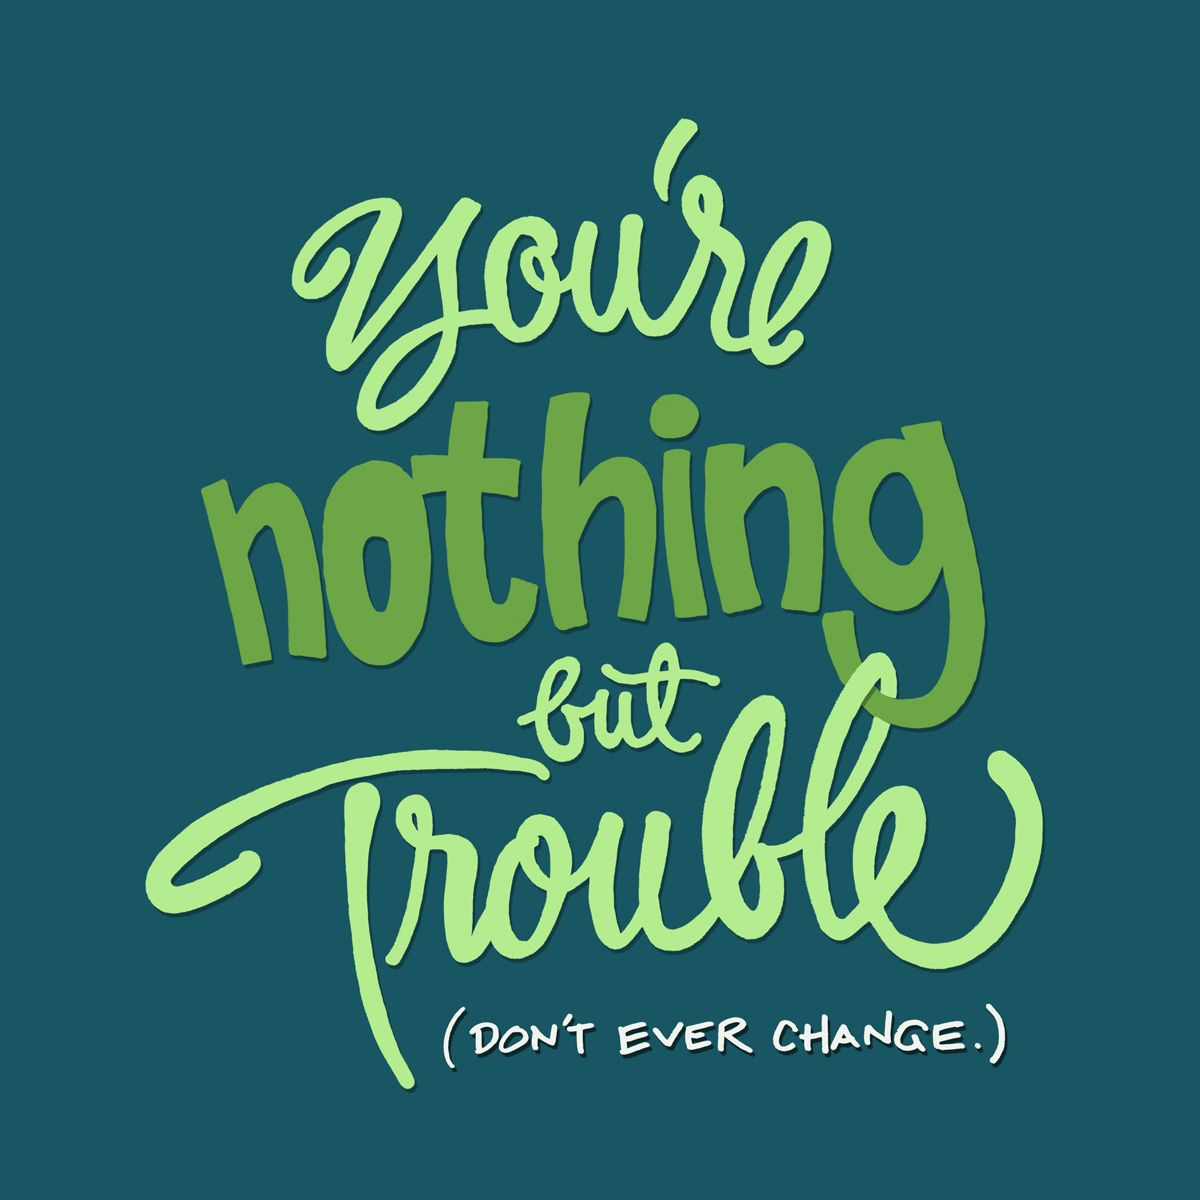 'You're Nothing But Trouble' | Daily Drawing #104. Lettering by John Suder.